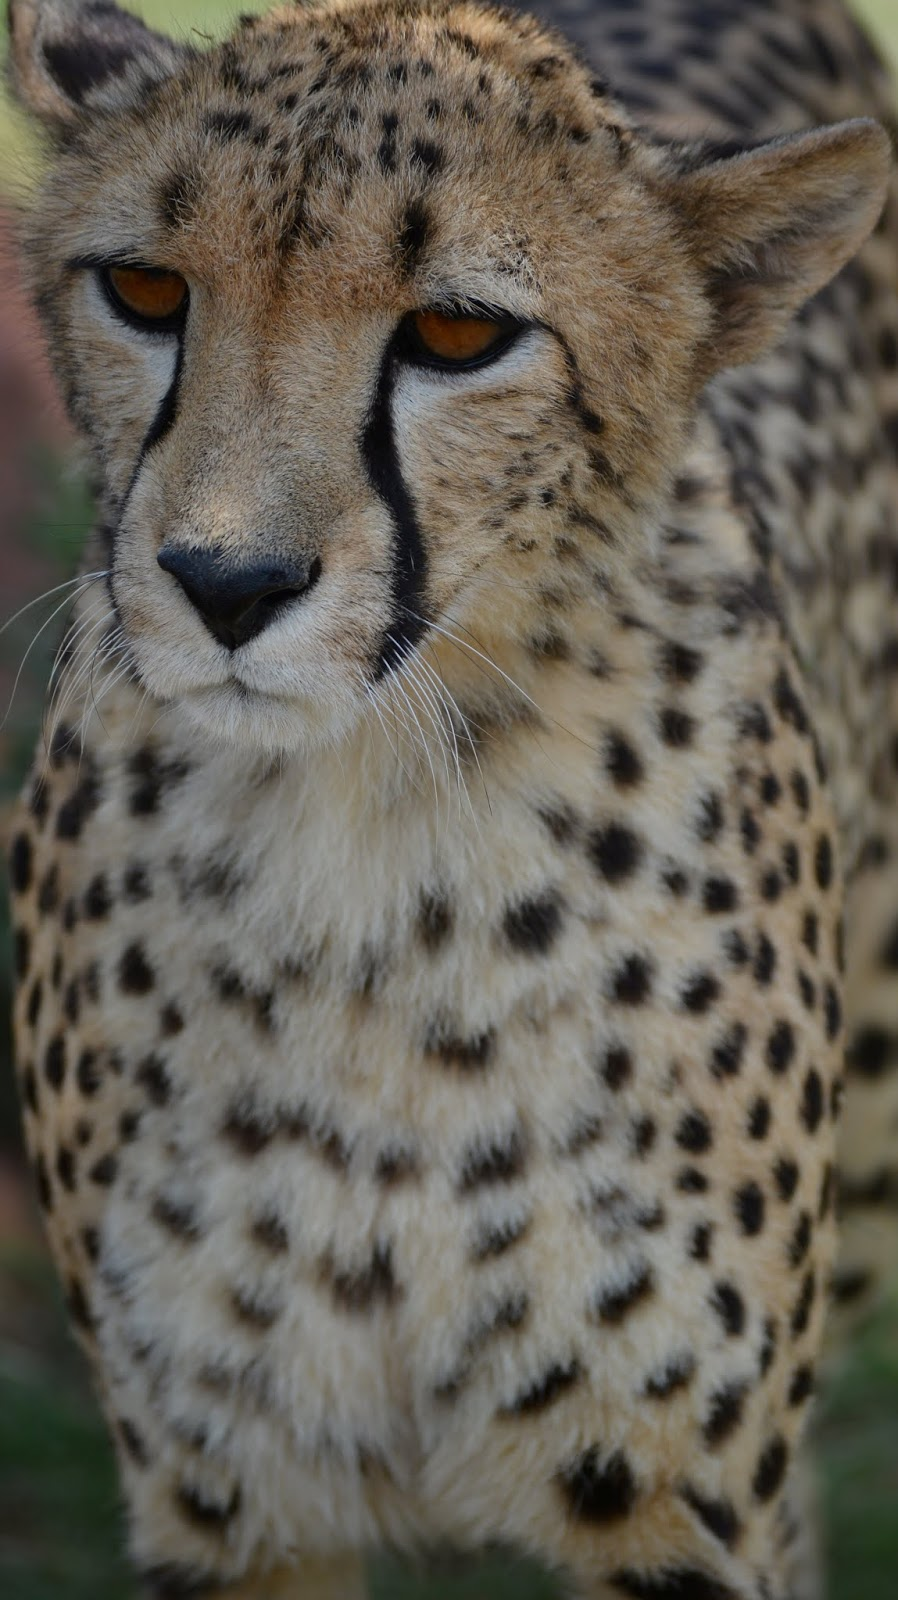 A cheetah up close.